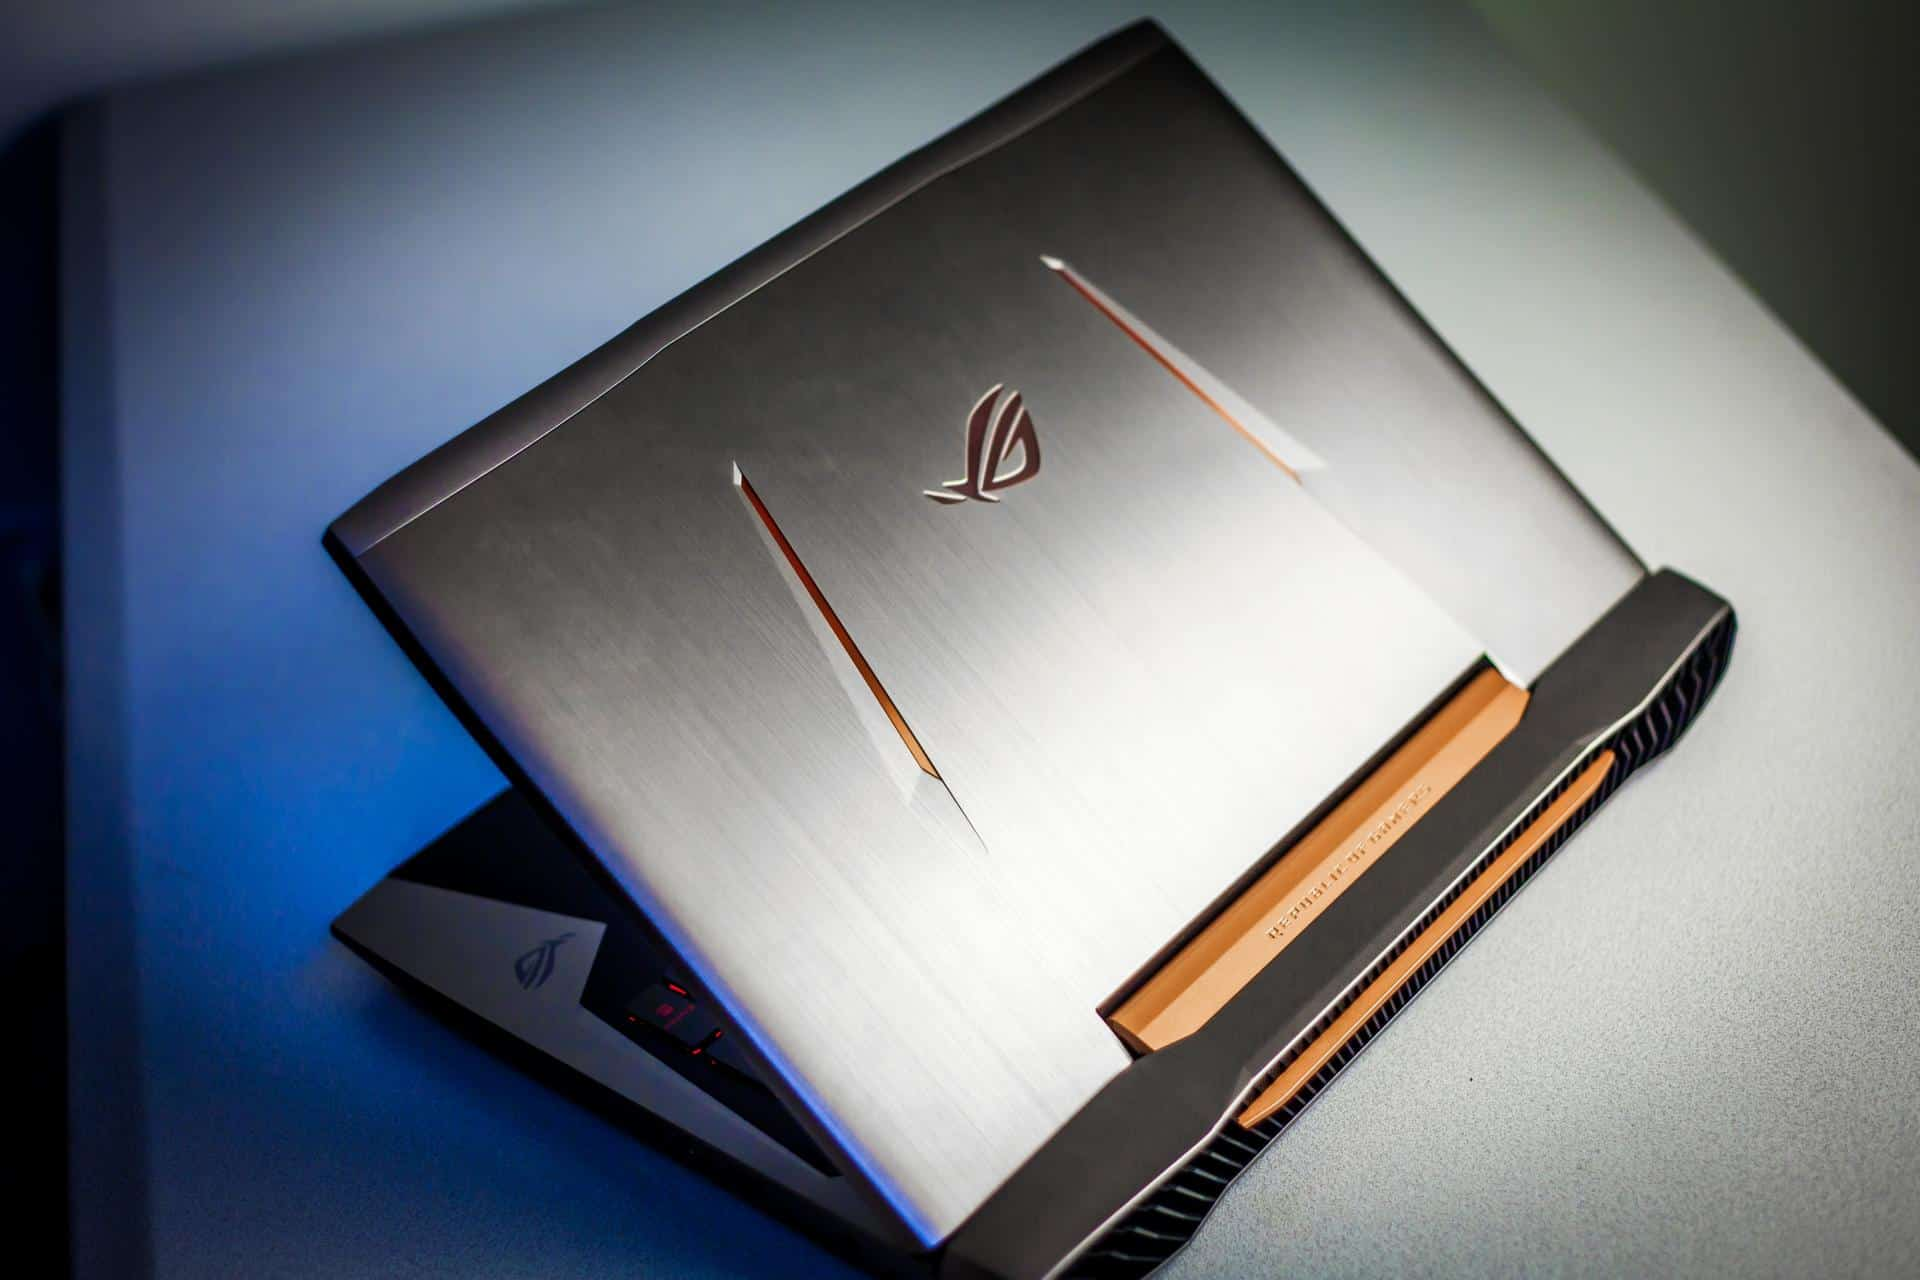 Asus Rog 17 3 Gaming Laptop i7 32gb GTX 1070oc Edition Review